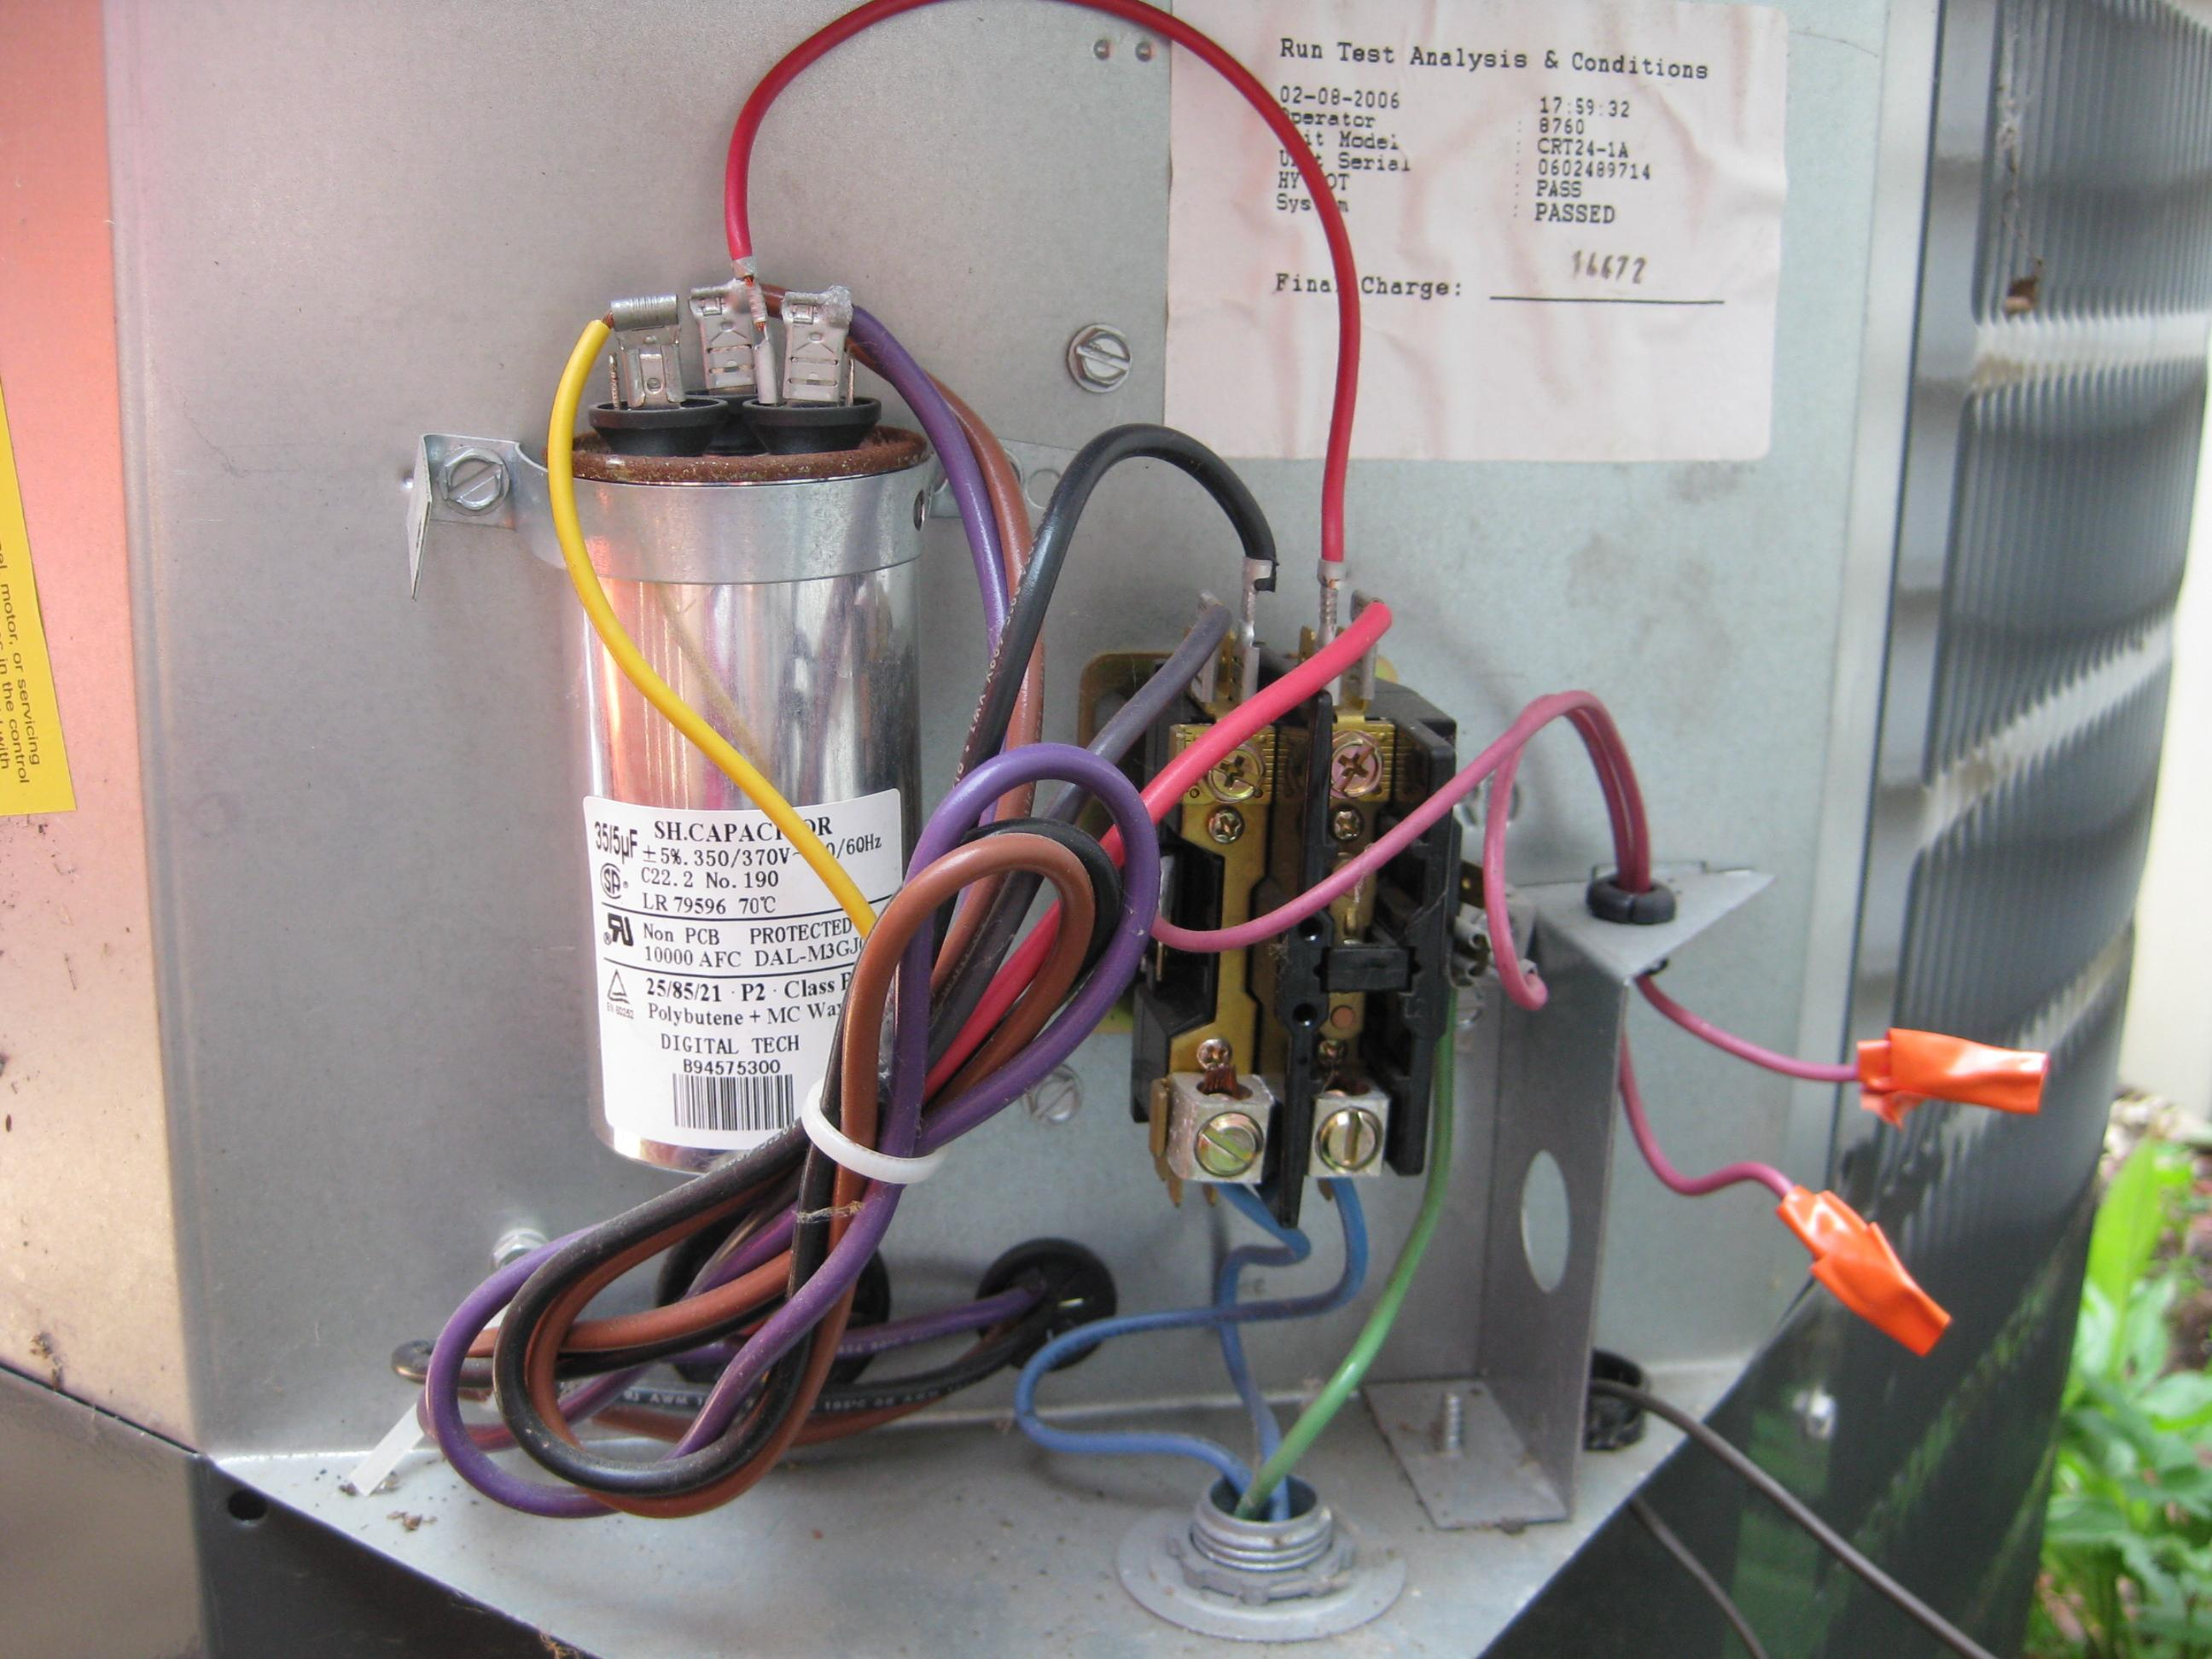 Emerson Pump Motor Wiring Diagram Low Voltage Diagnosis Basics W Bill Johnson Podcast